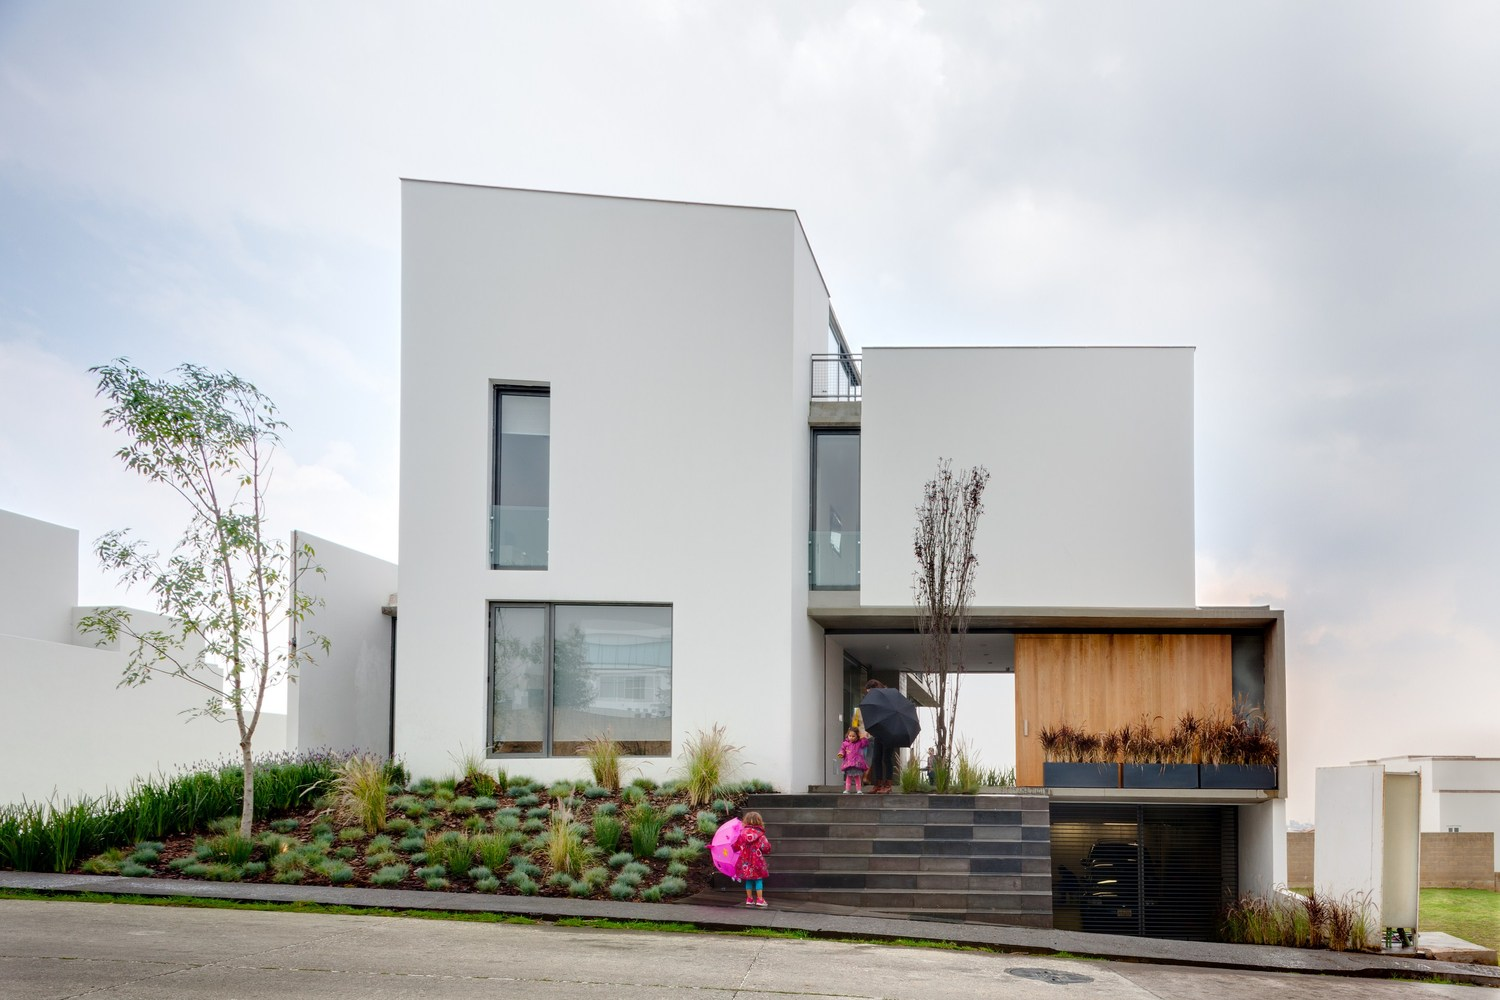 Gallery of Valna House / JSa Architecture - 1 on nice house windows, nice house roofs, nice house rooms, nice house stairs, nice house decks,